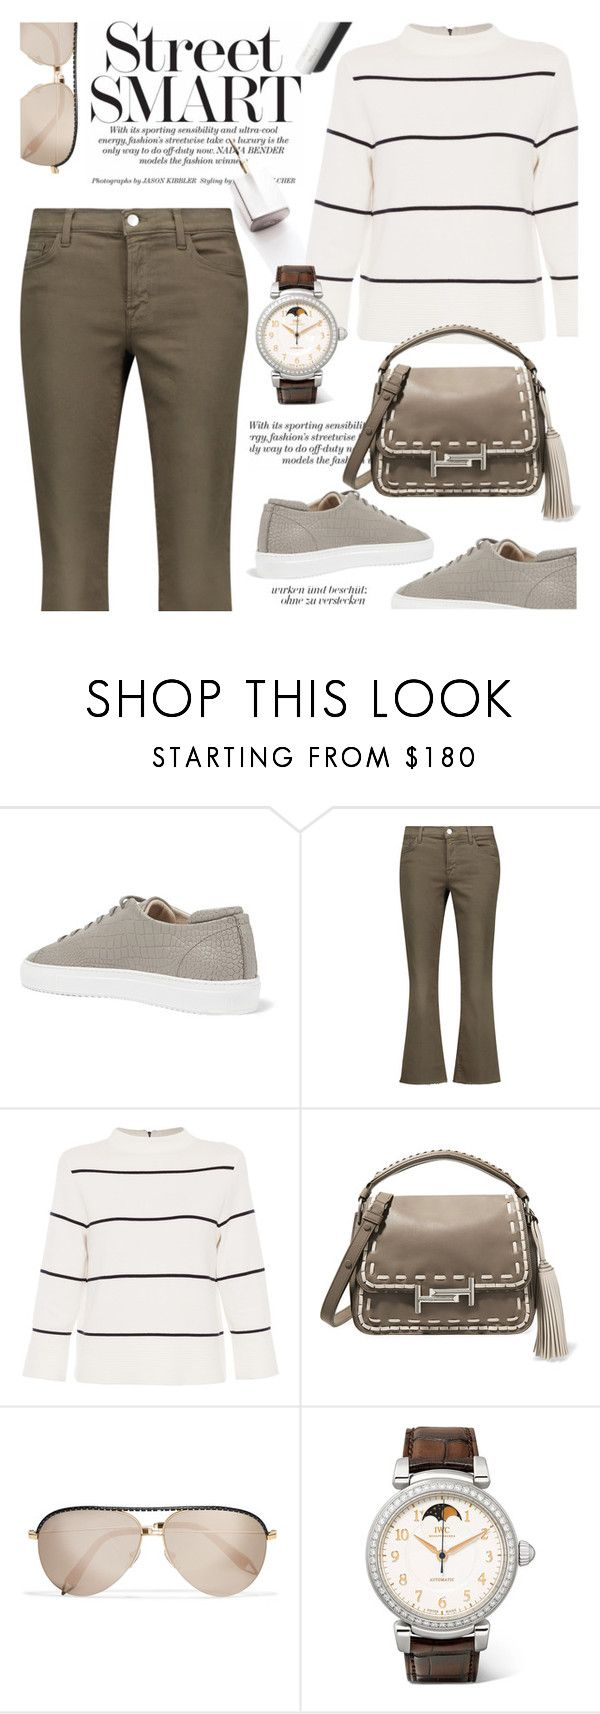 """""""comfy casual"""" by cilita-d ❤ liked on Polyvore featuring Axel Arigato, J Brand, L.K.Bennett, Tod's, Victoria Beckham, IWC Schaffhausen, Garance Doré and handlebag"""